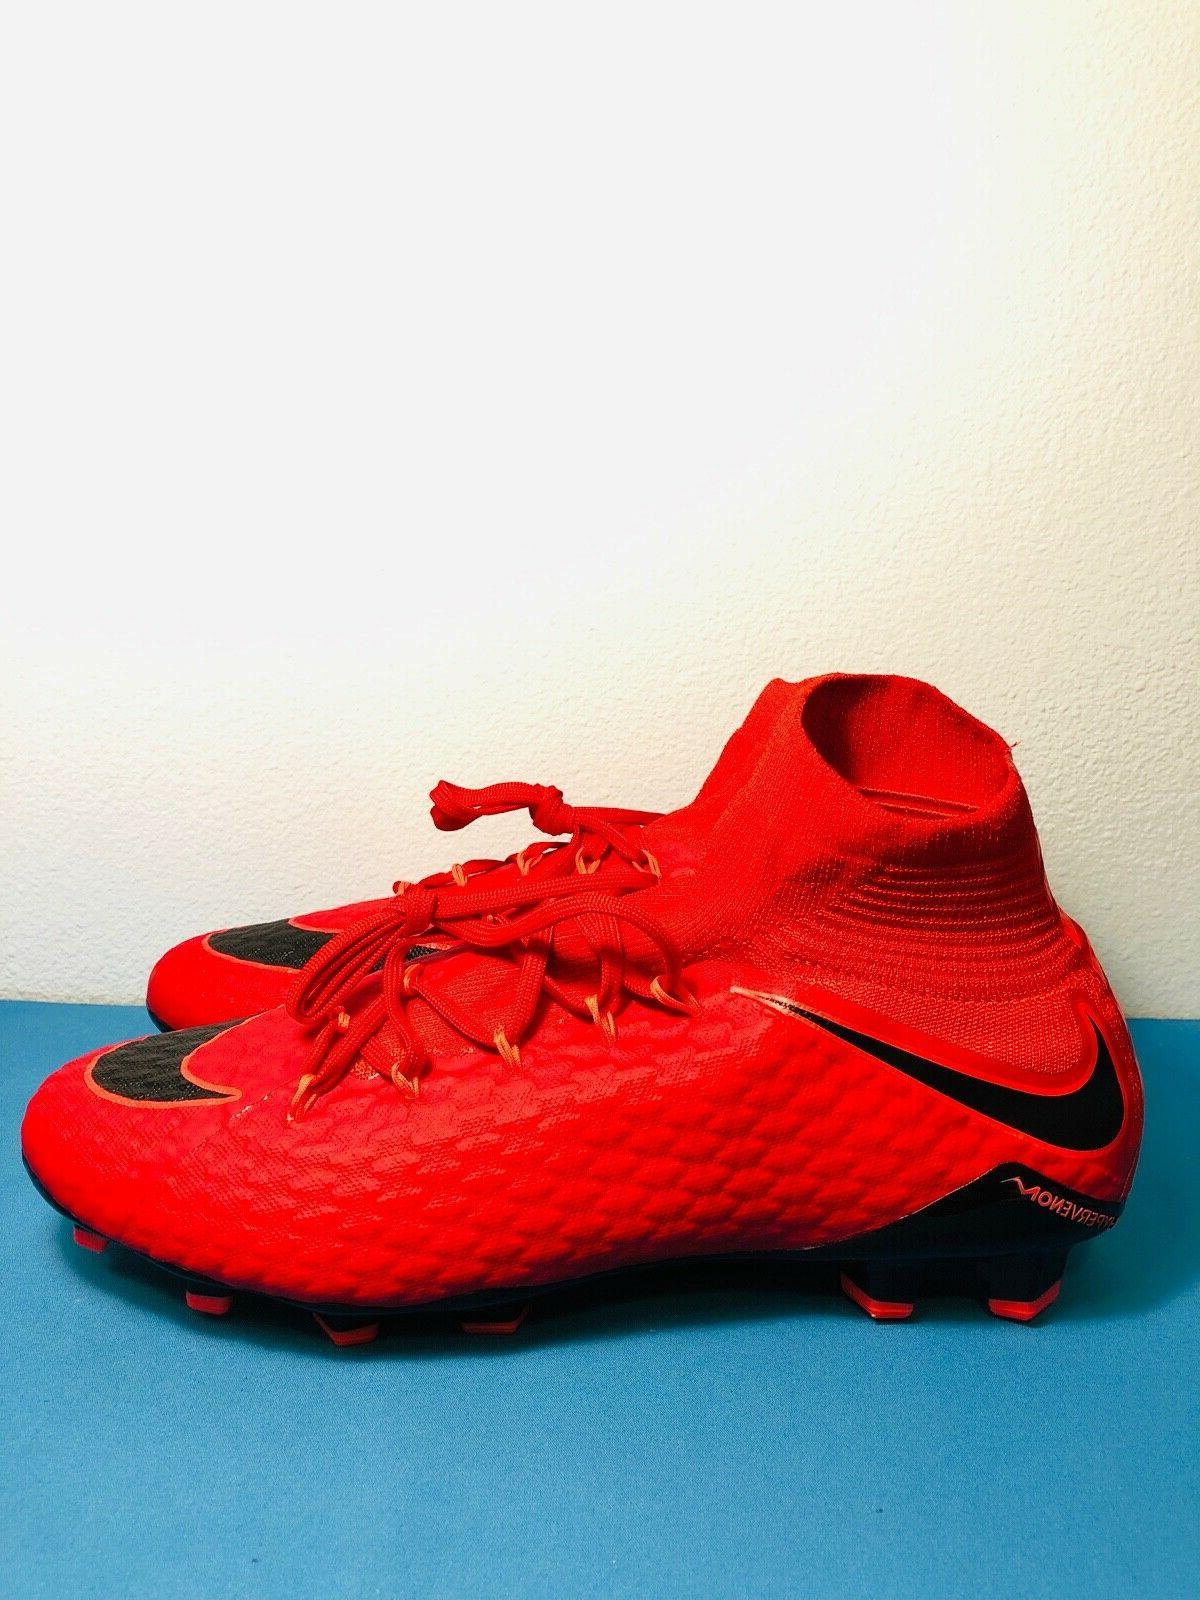 Nike 3 DF FG Cleats, MSRP